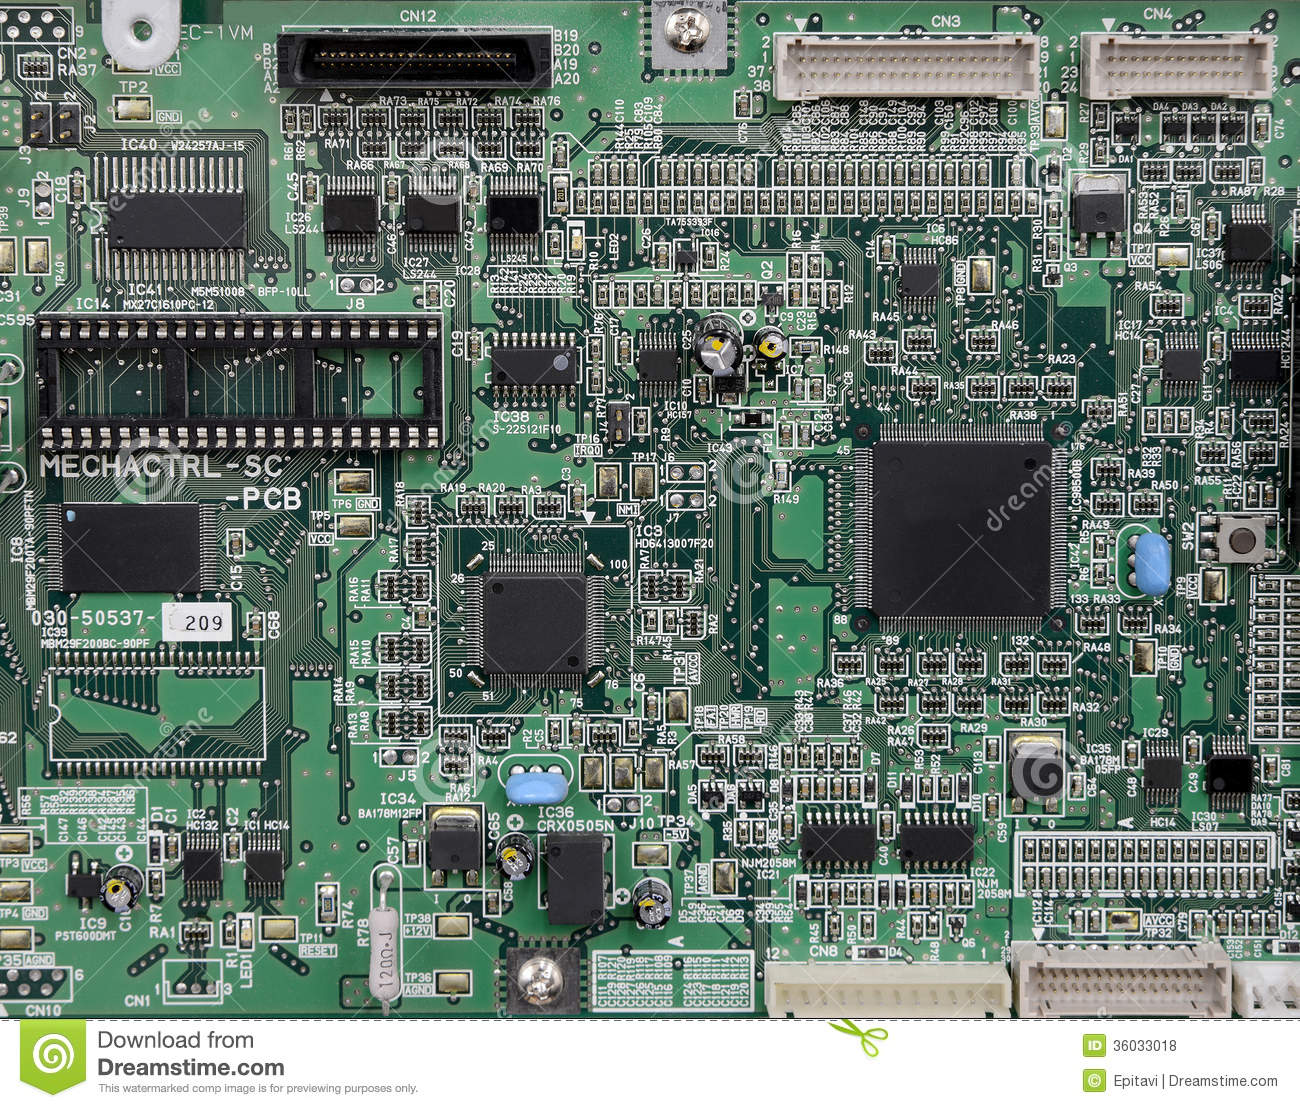 Electronic Circuit Board Stock Photo Image Of Industry 36033018 Stockfoto Printed Pcb Used In Industrial